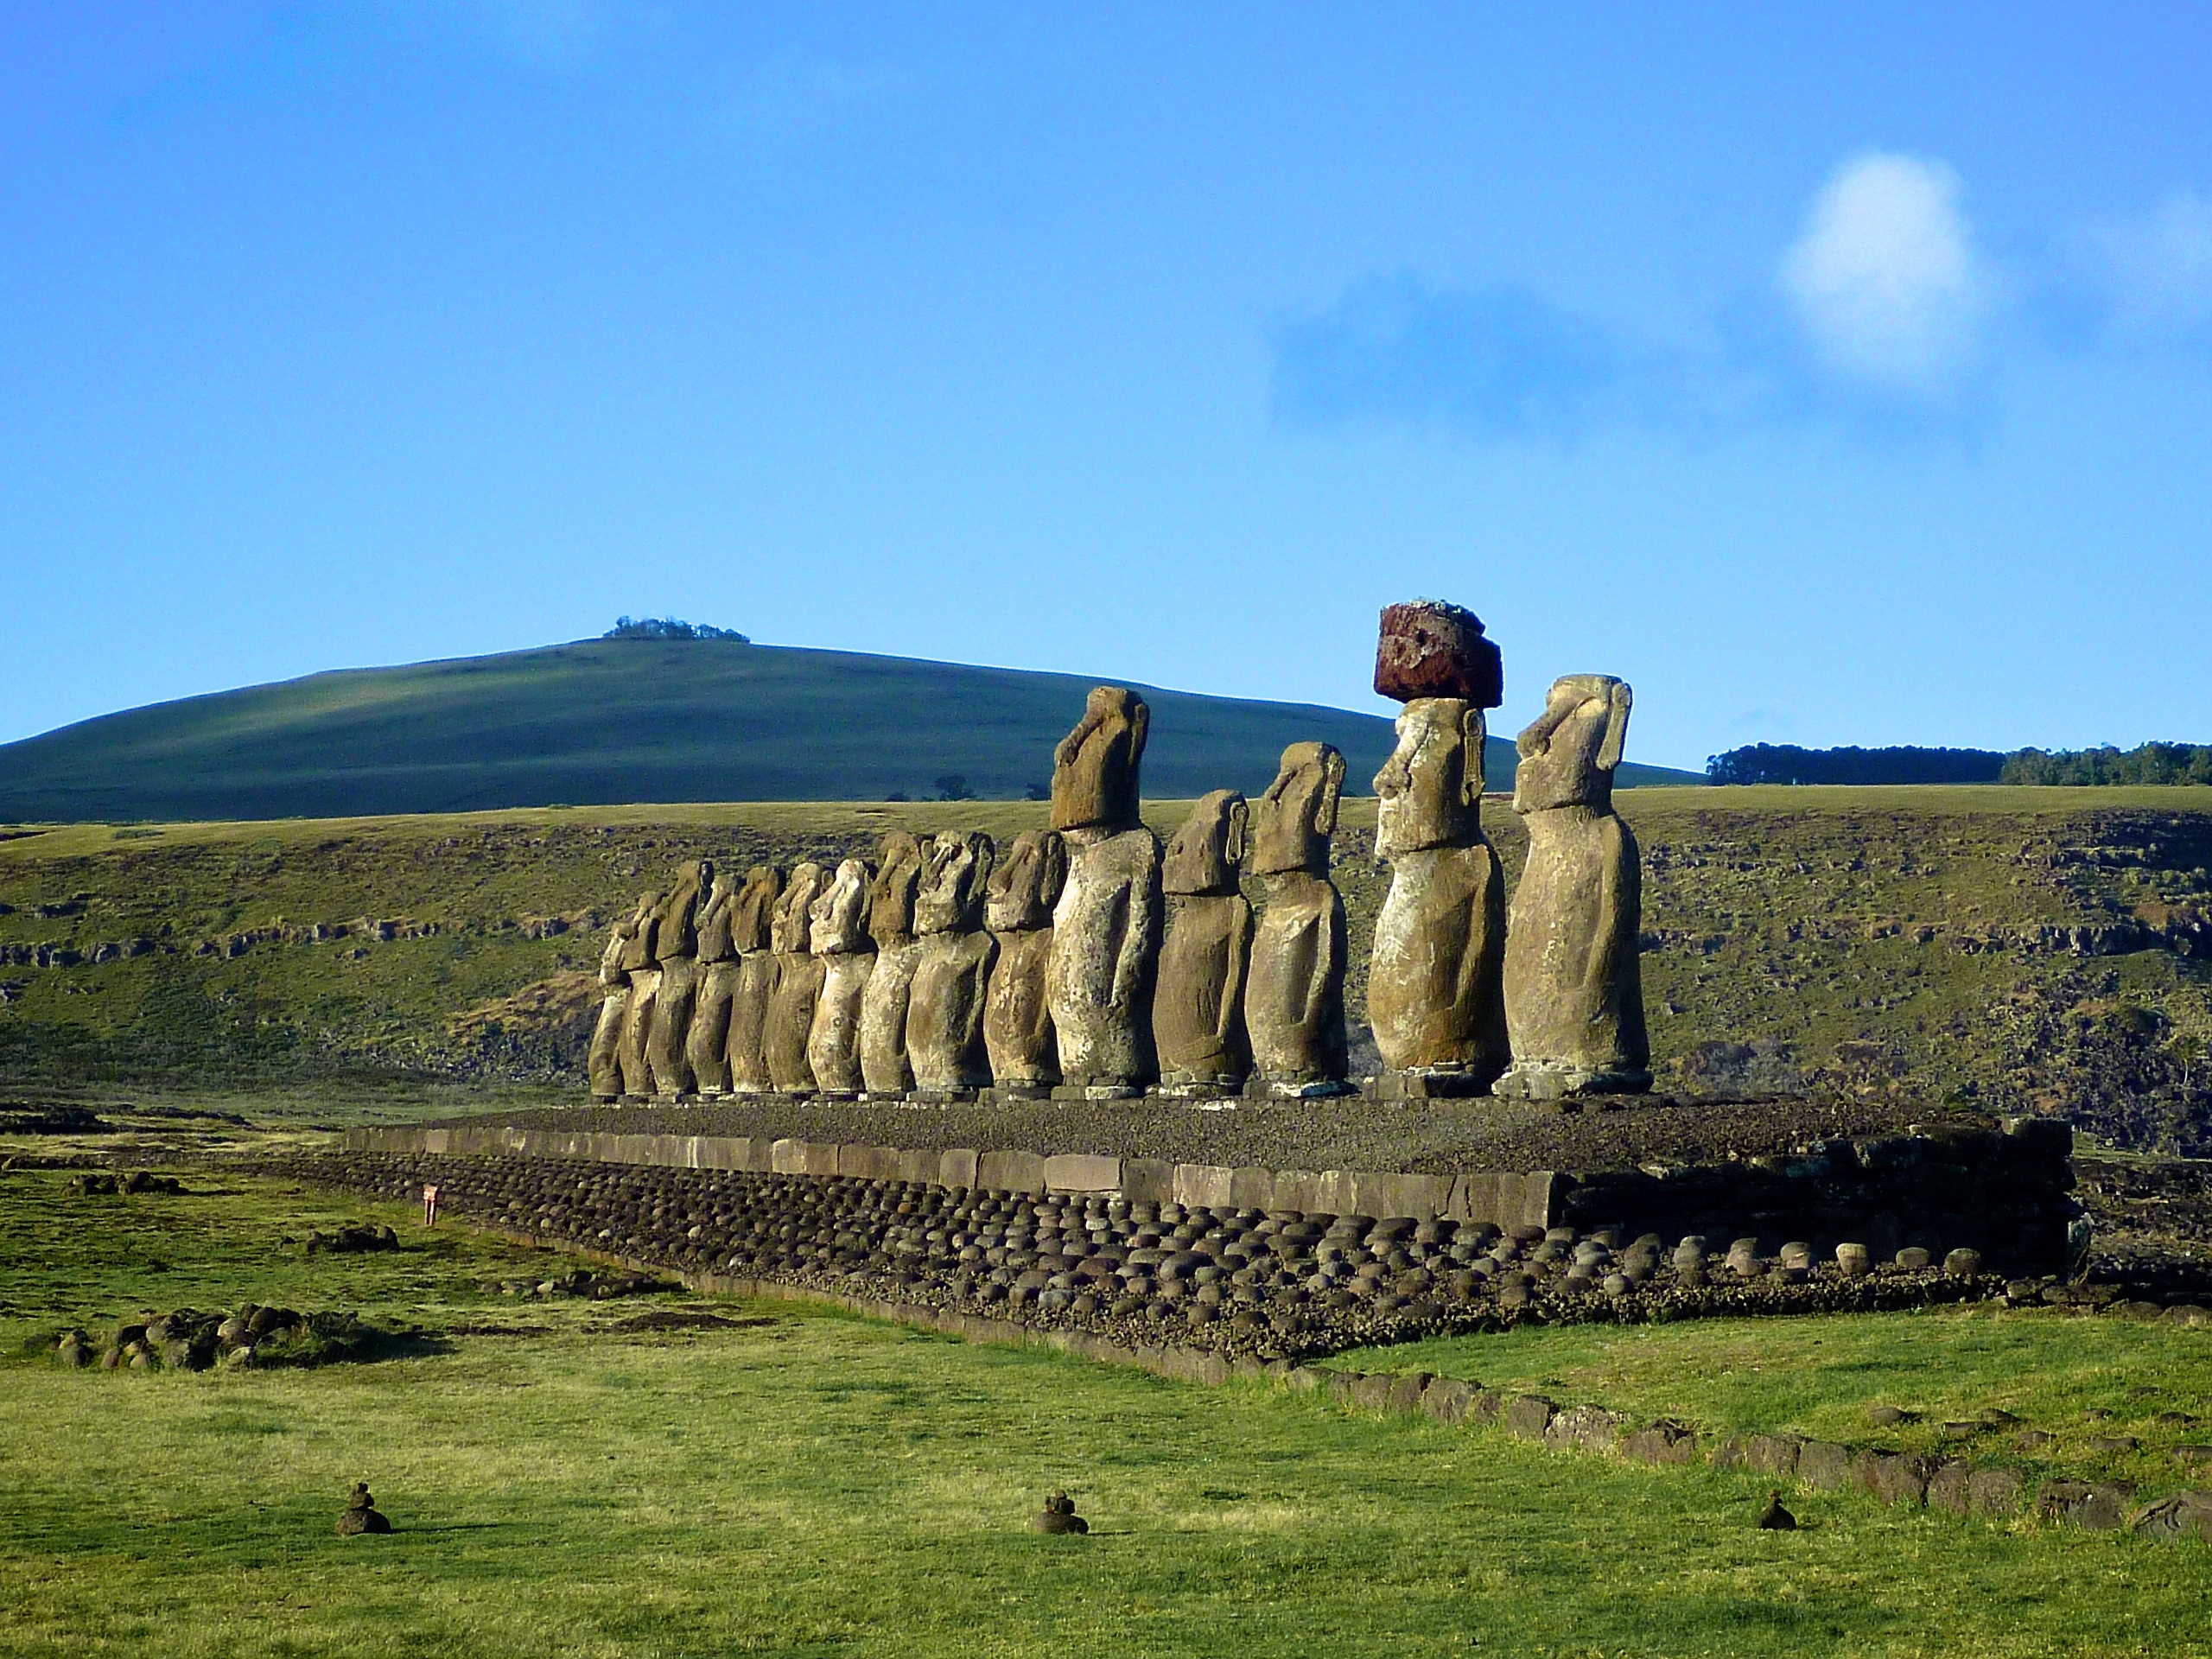 Wallpapers With Inspirational Quotes Free Download Hd Easter Island Images Pixelstalk Net